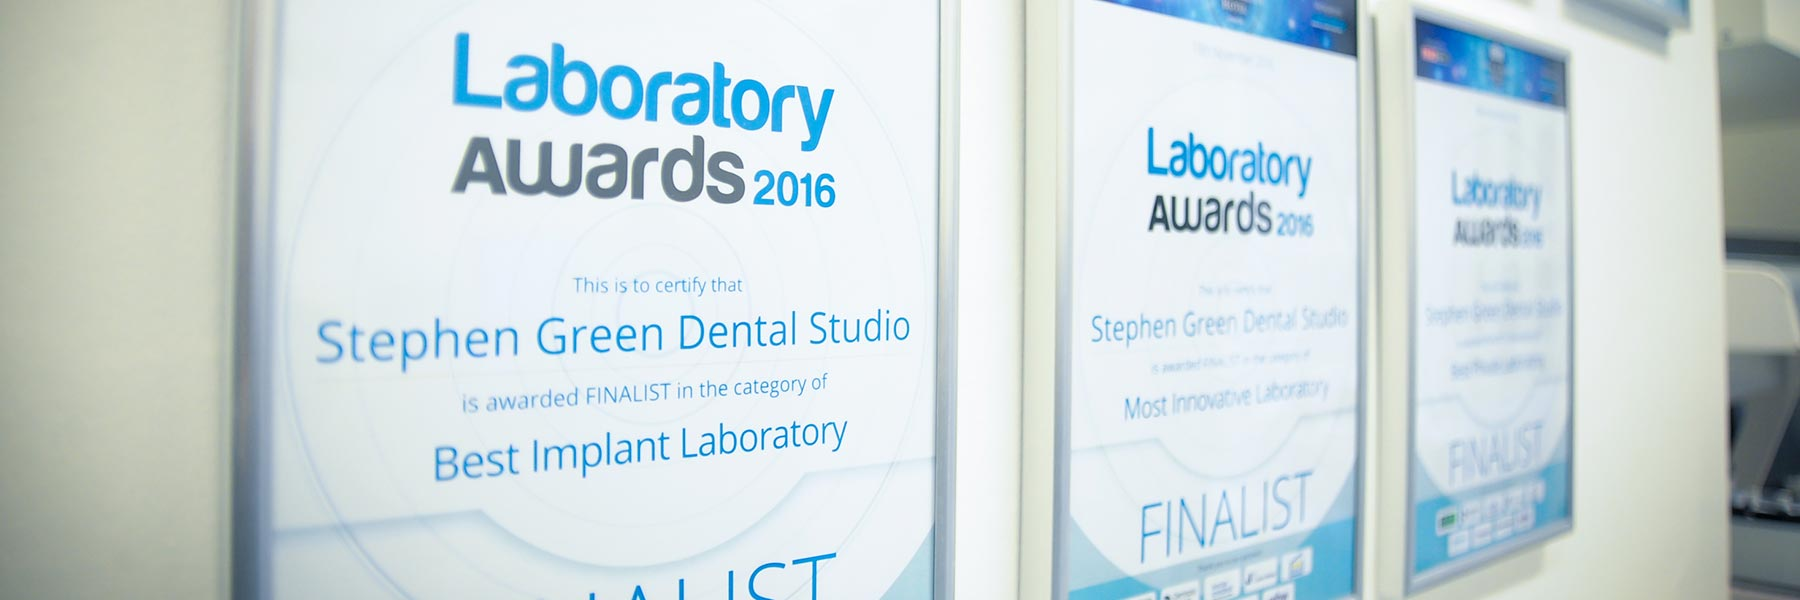 laboratory awards